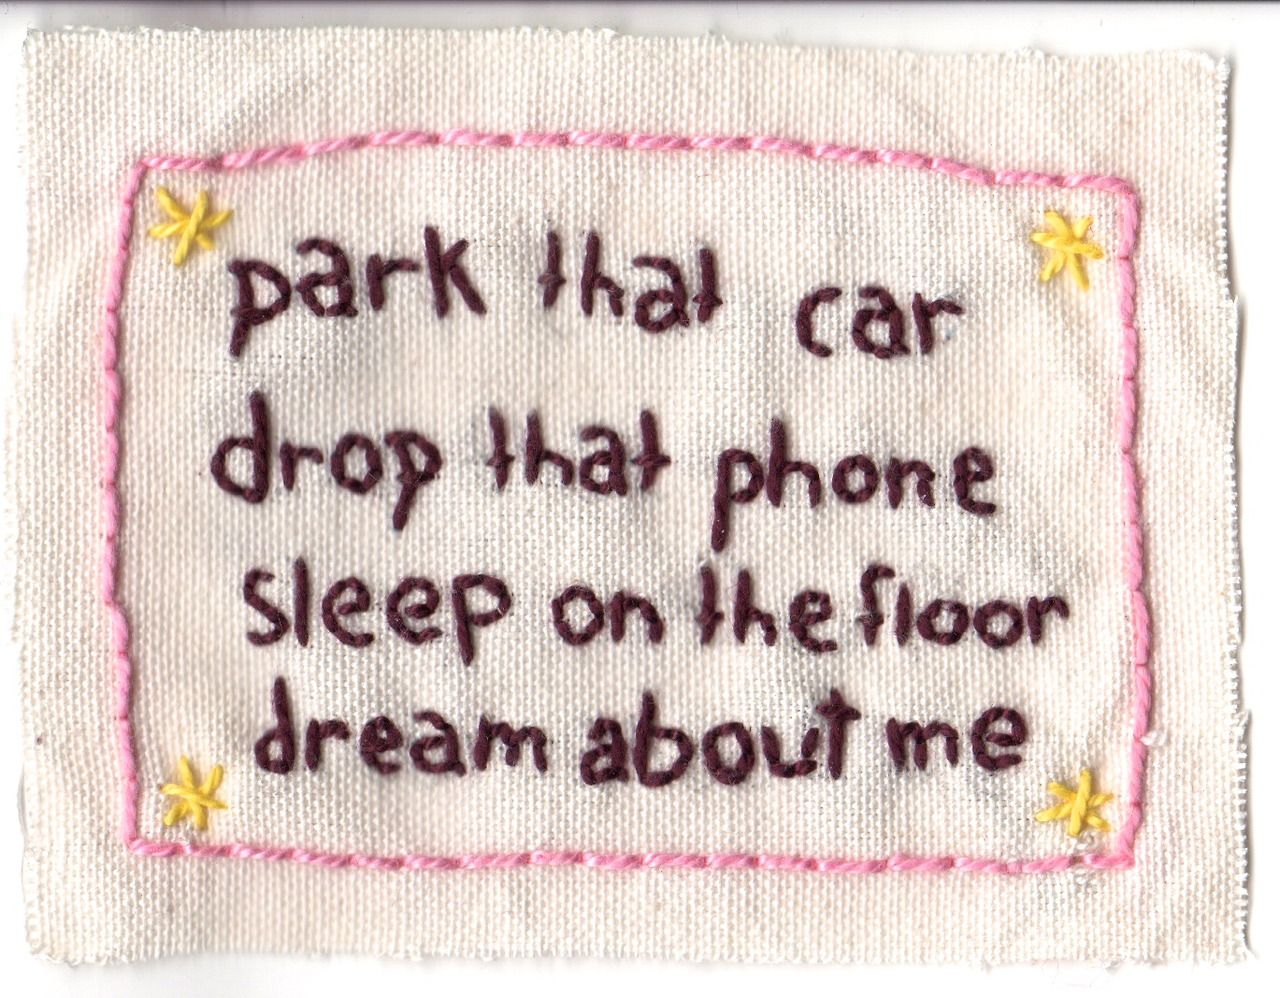 PARK THAT CAR Drop That Phone Sleep On The Floor Dream About Me